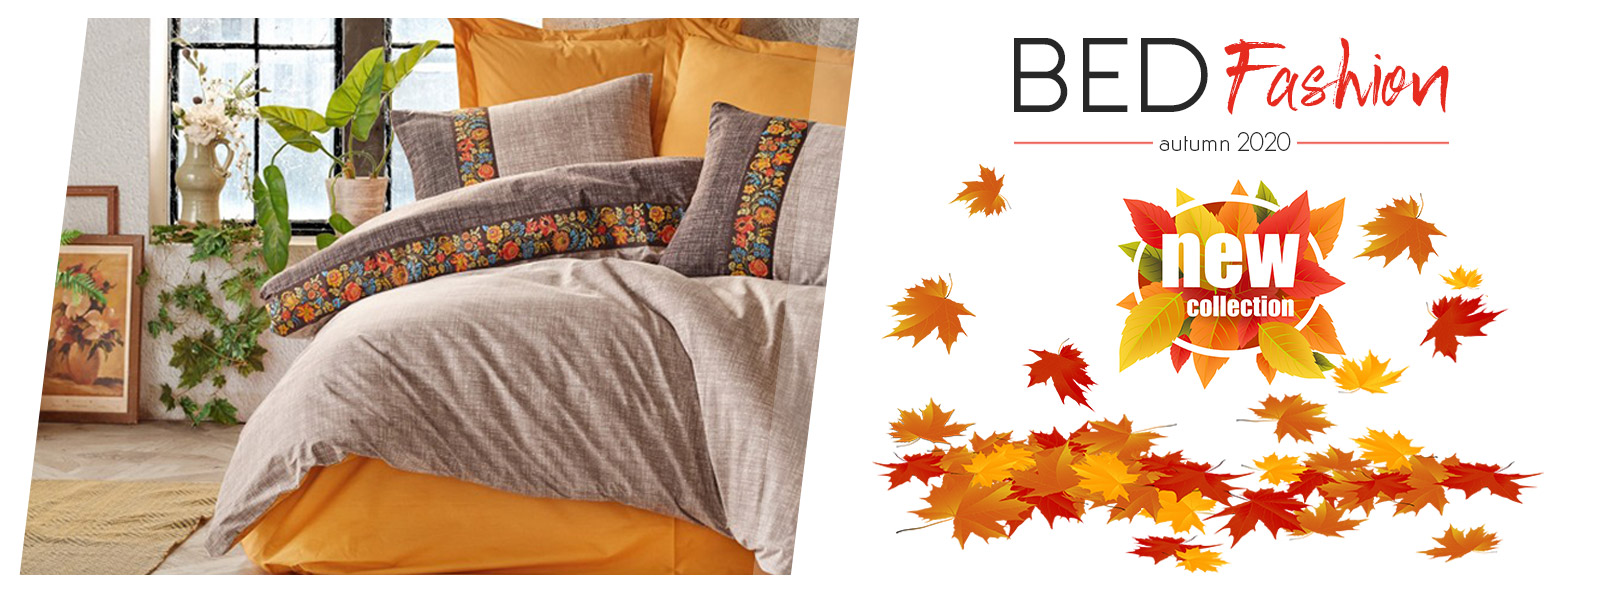 colectia-bed-fashion-autumn-2020-talis